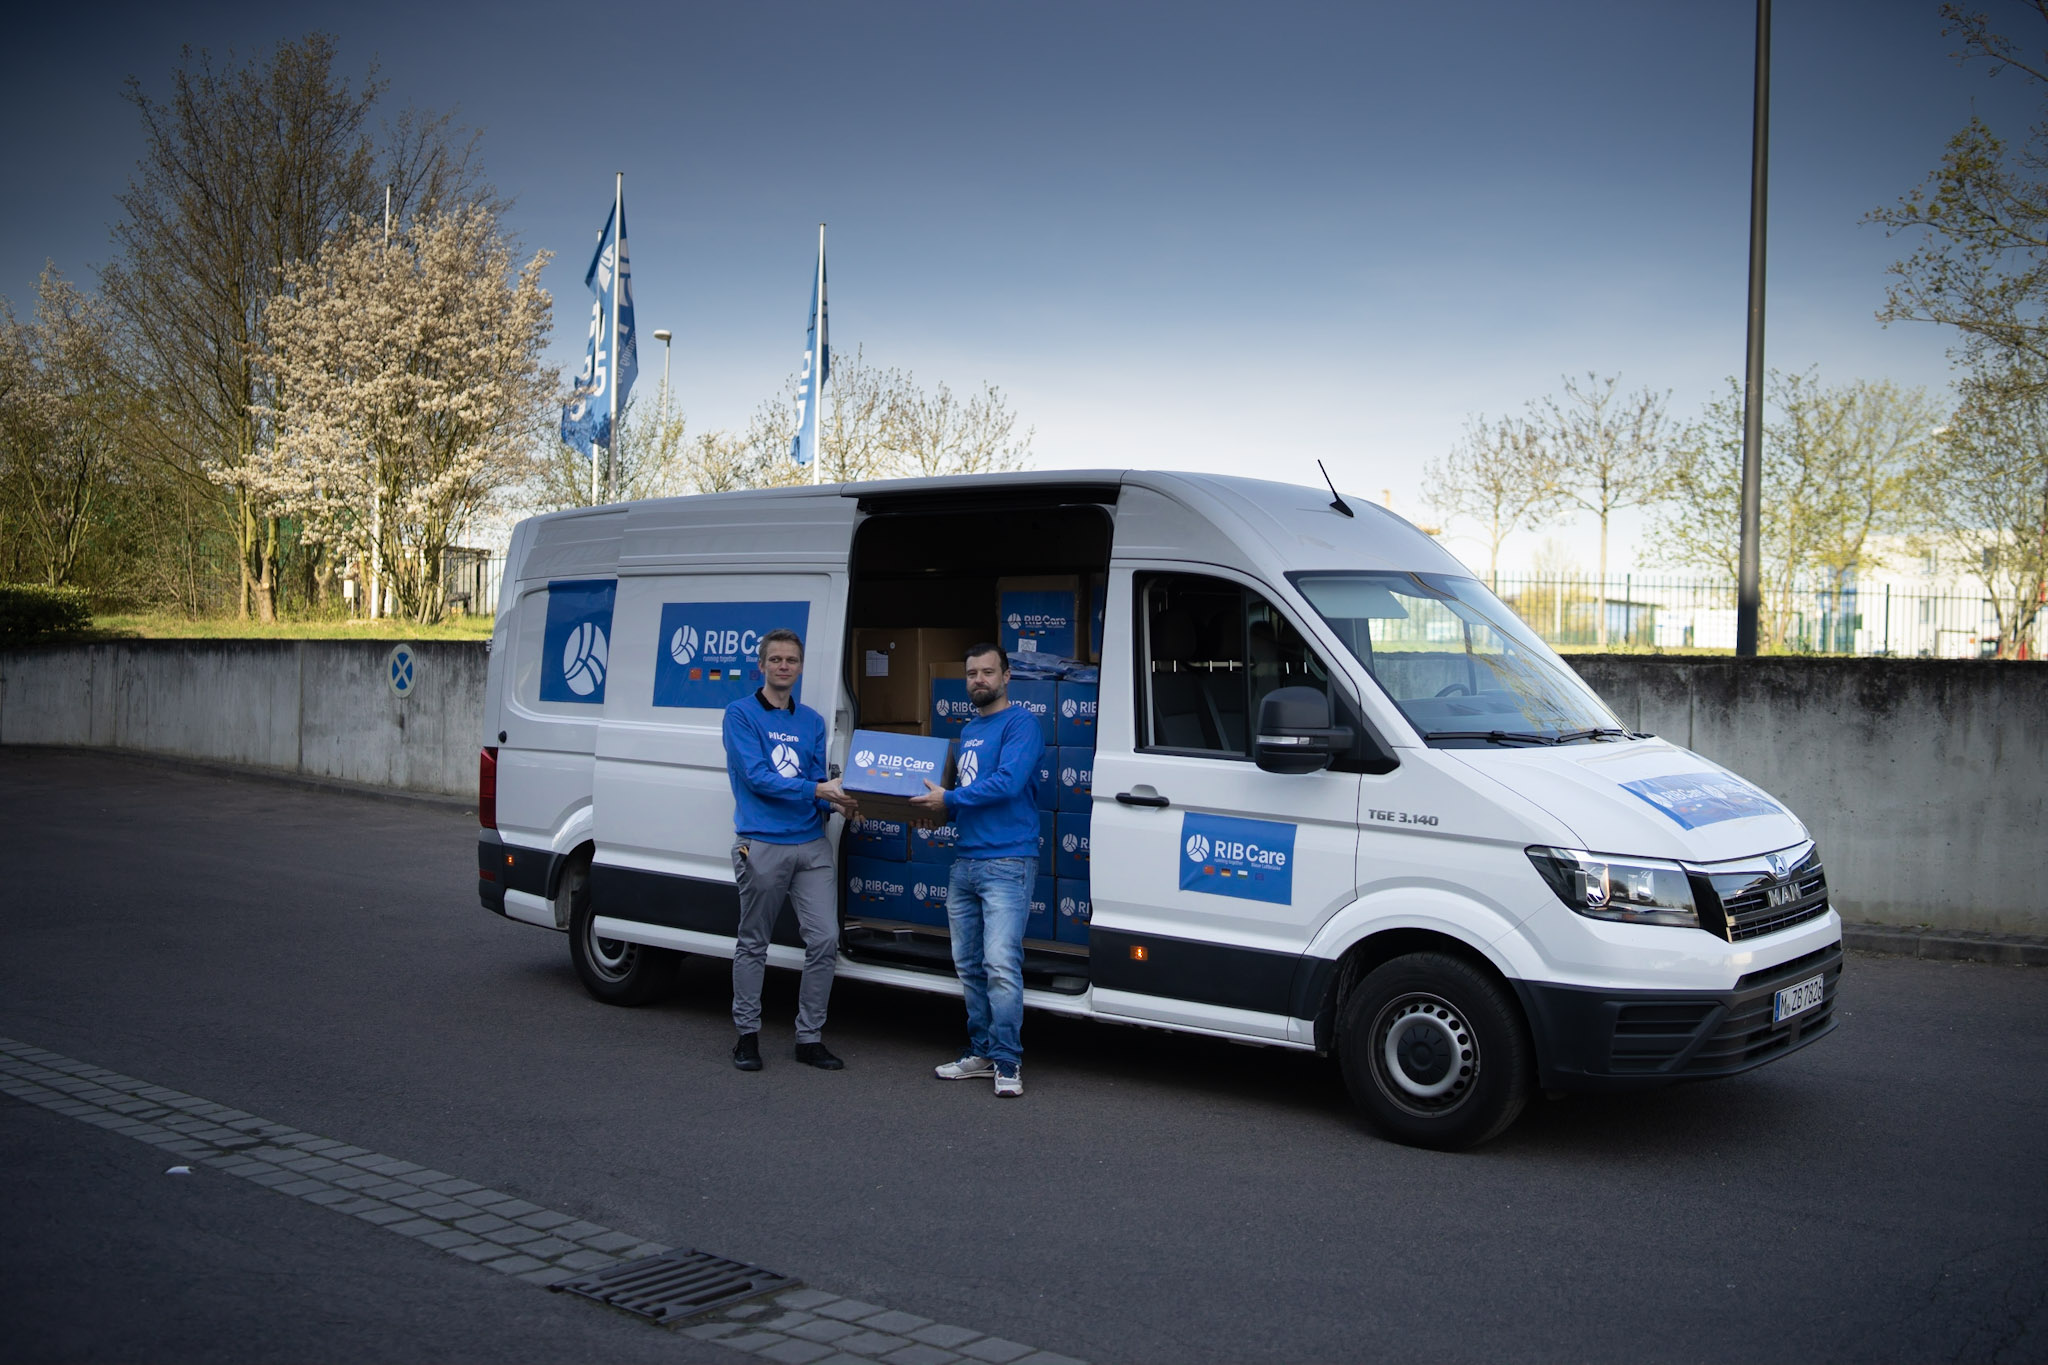 The donation transporter with medical equipment reaches us in Germany